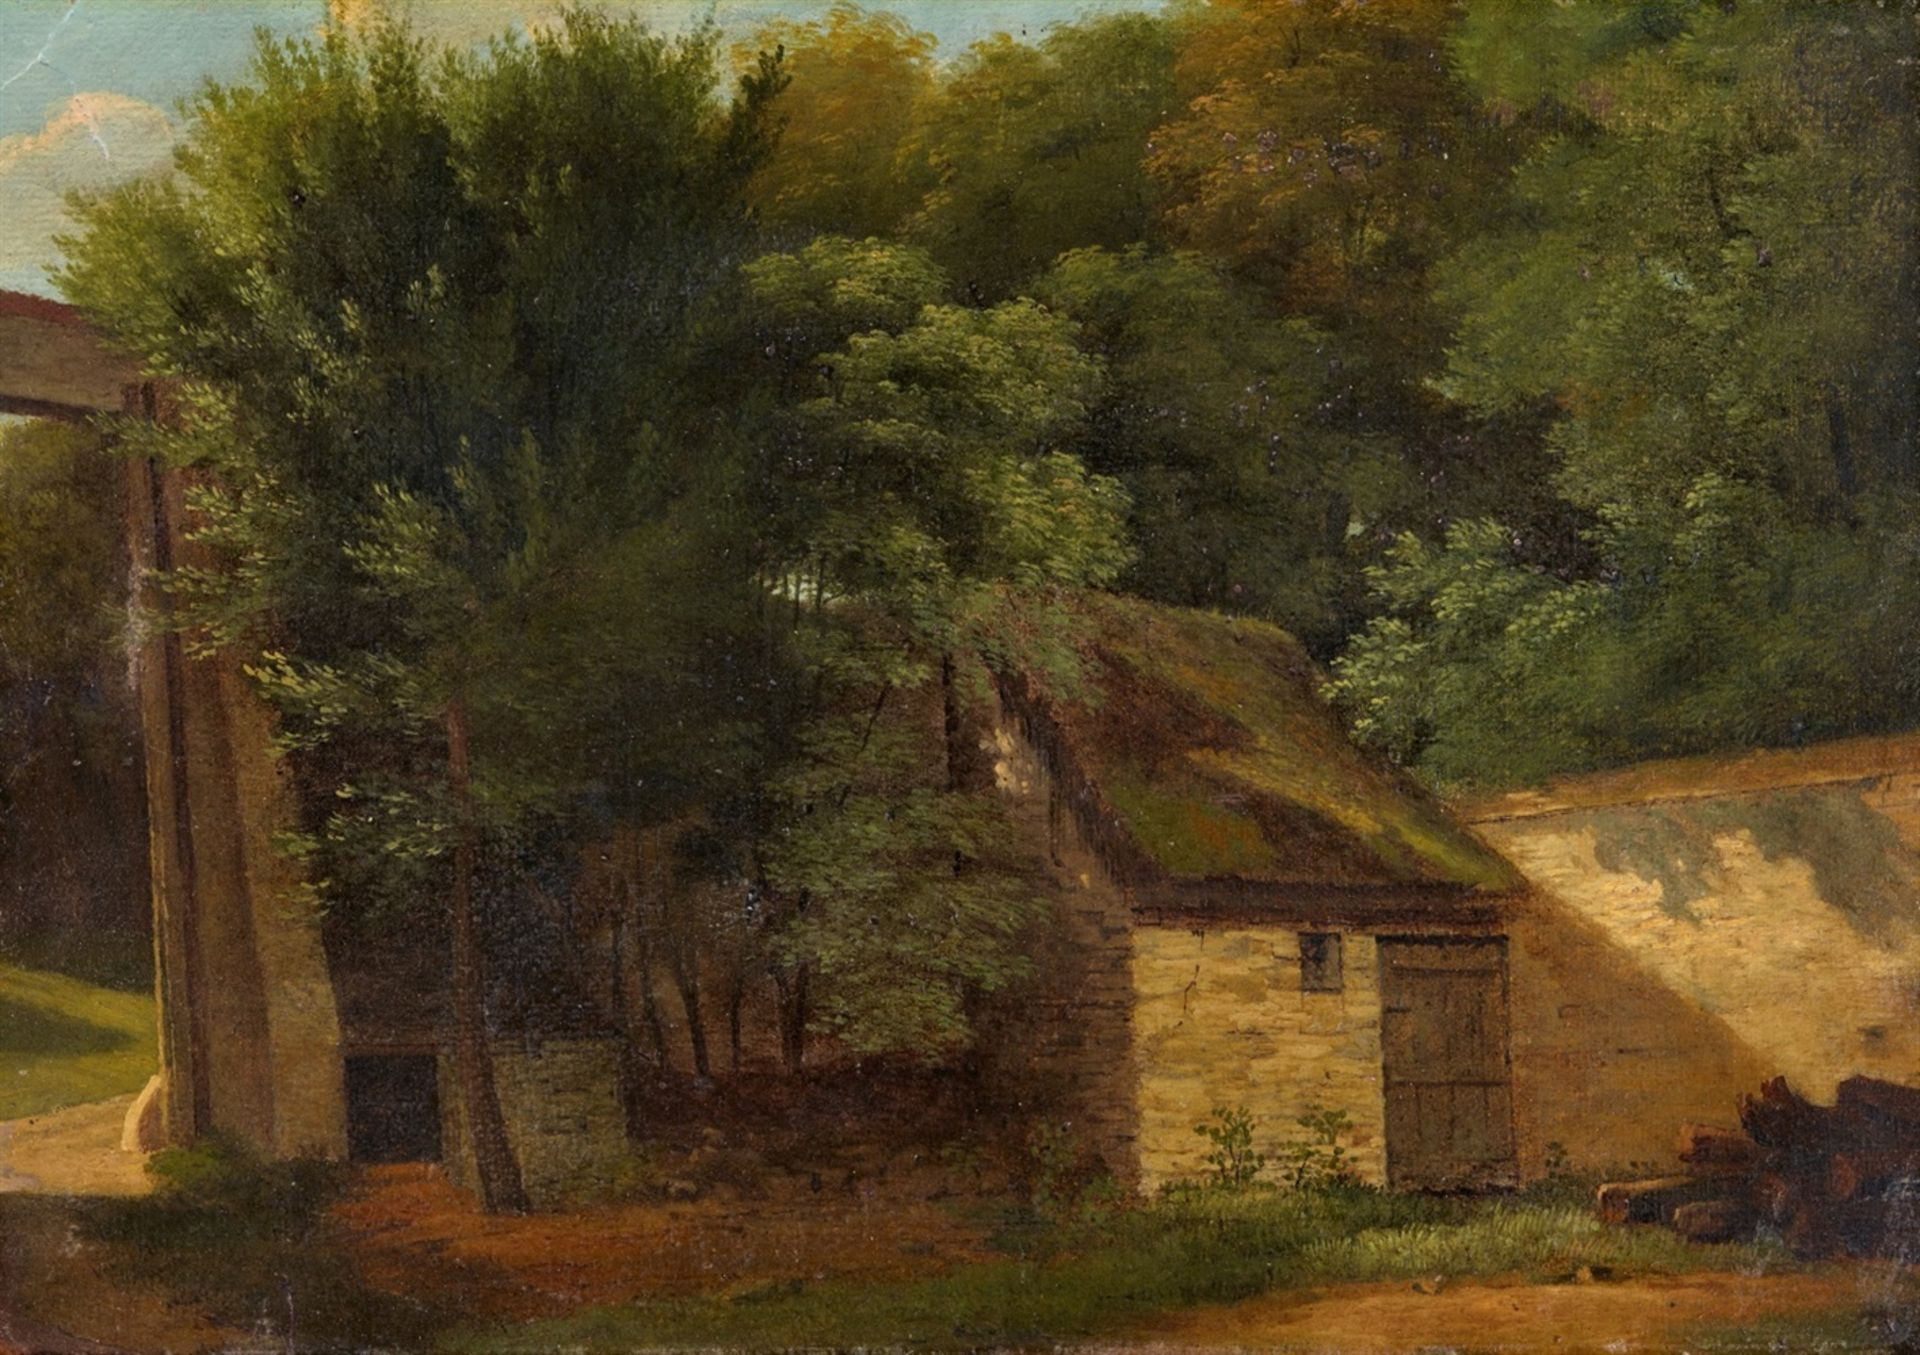 Los 2505 - Jean-Victor BertinThe Entrance to the Park Saint-Cloud in ParisOil on paper, mounted on canvas. 26.5